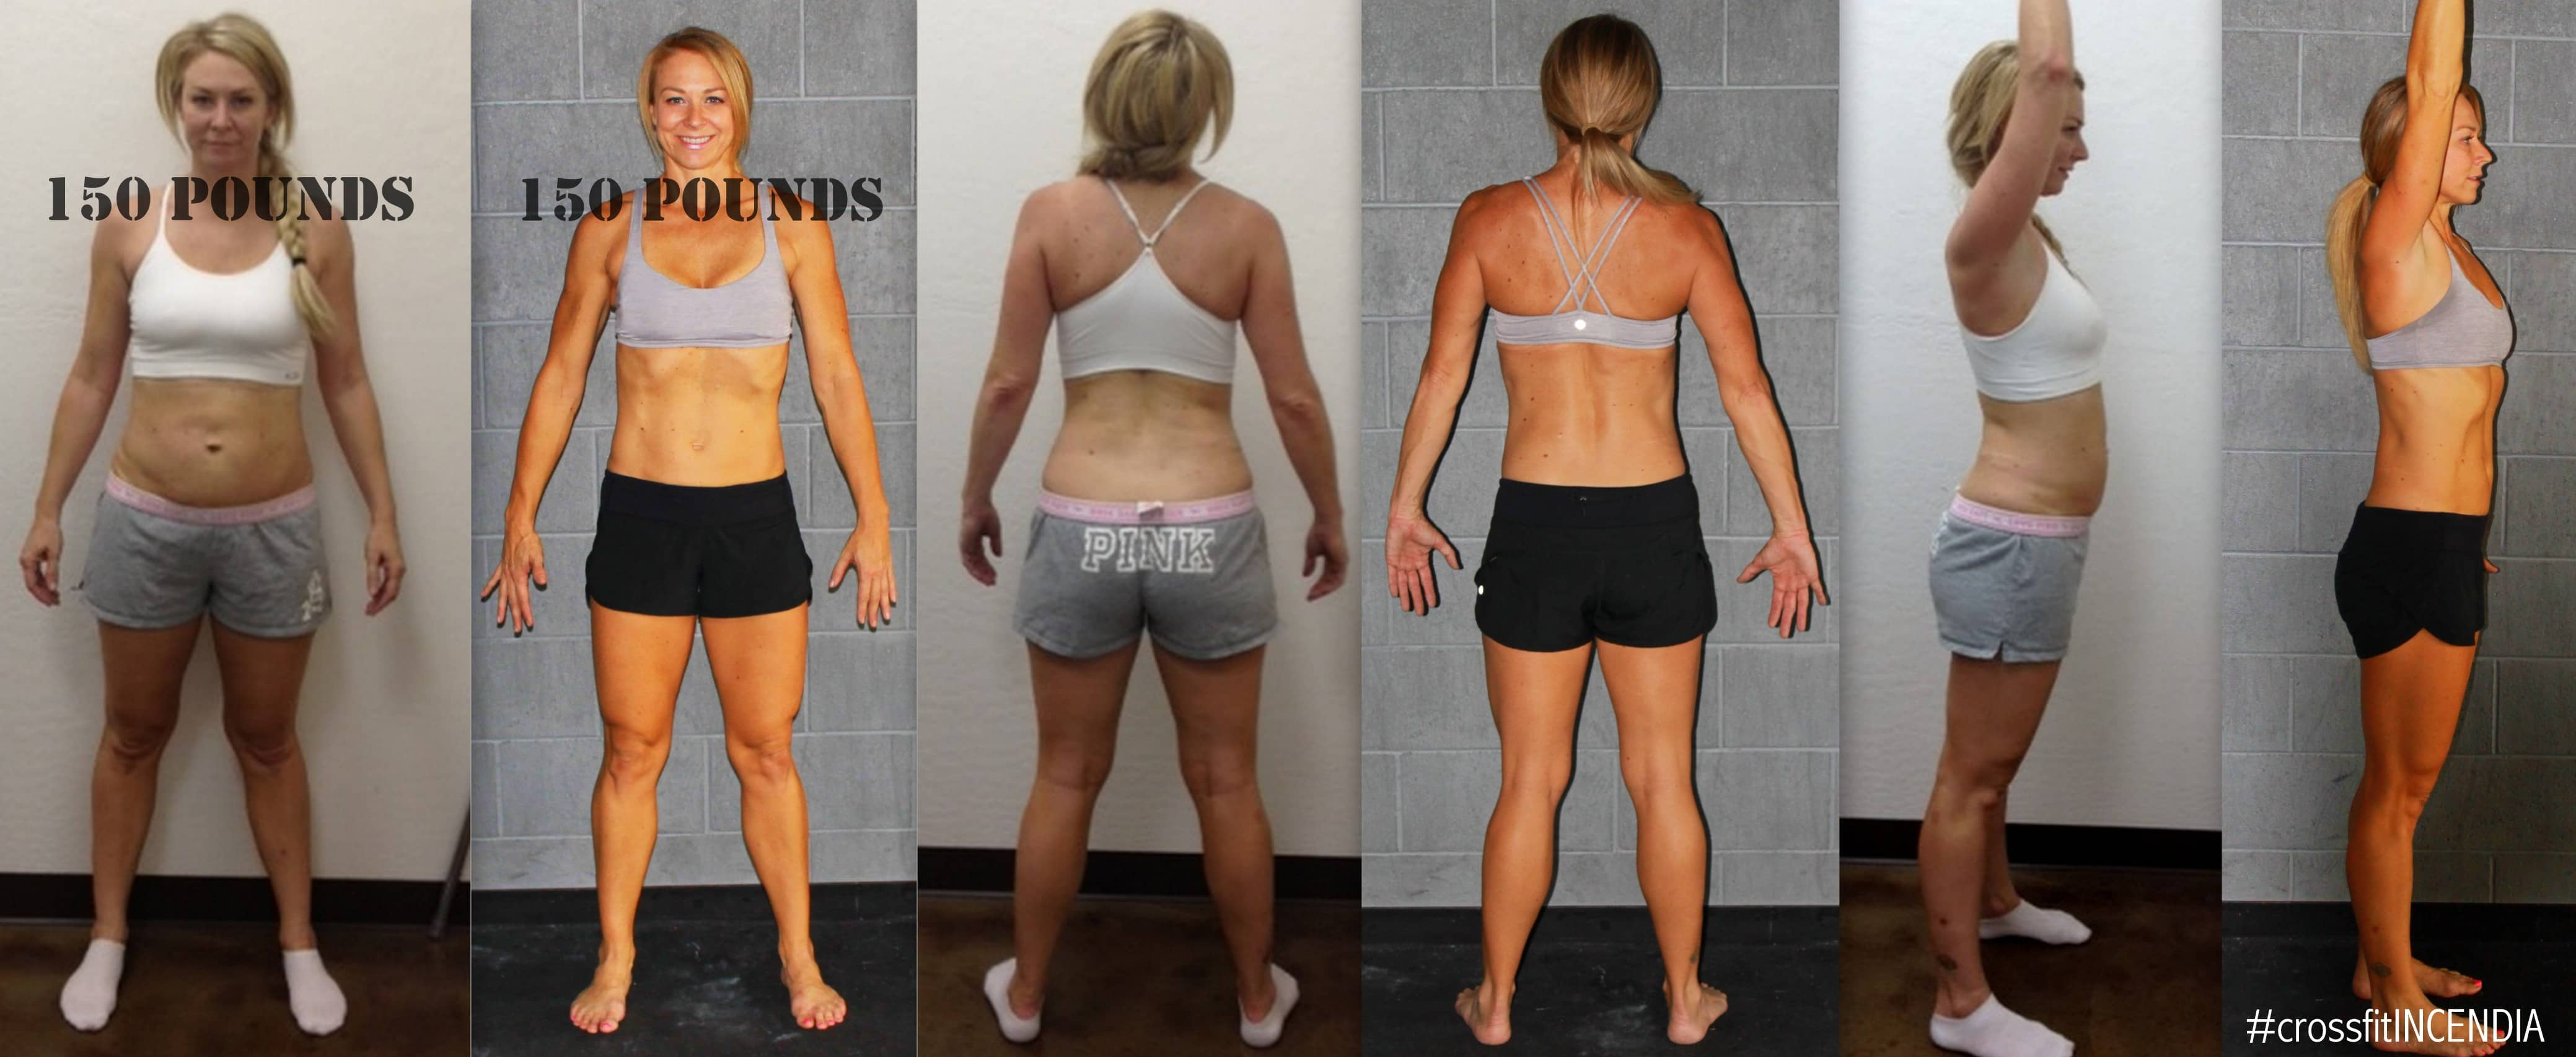 WHAT DOES 150 POUNDS LOOK LIKE? - CrossFit Incendia